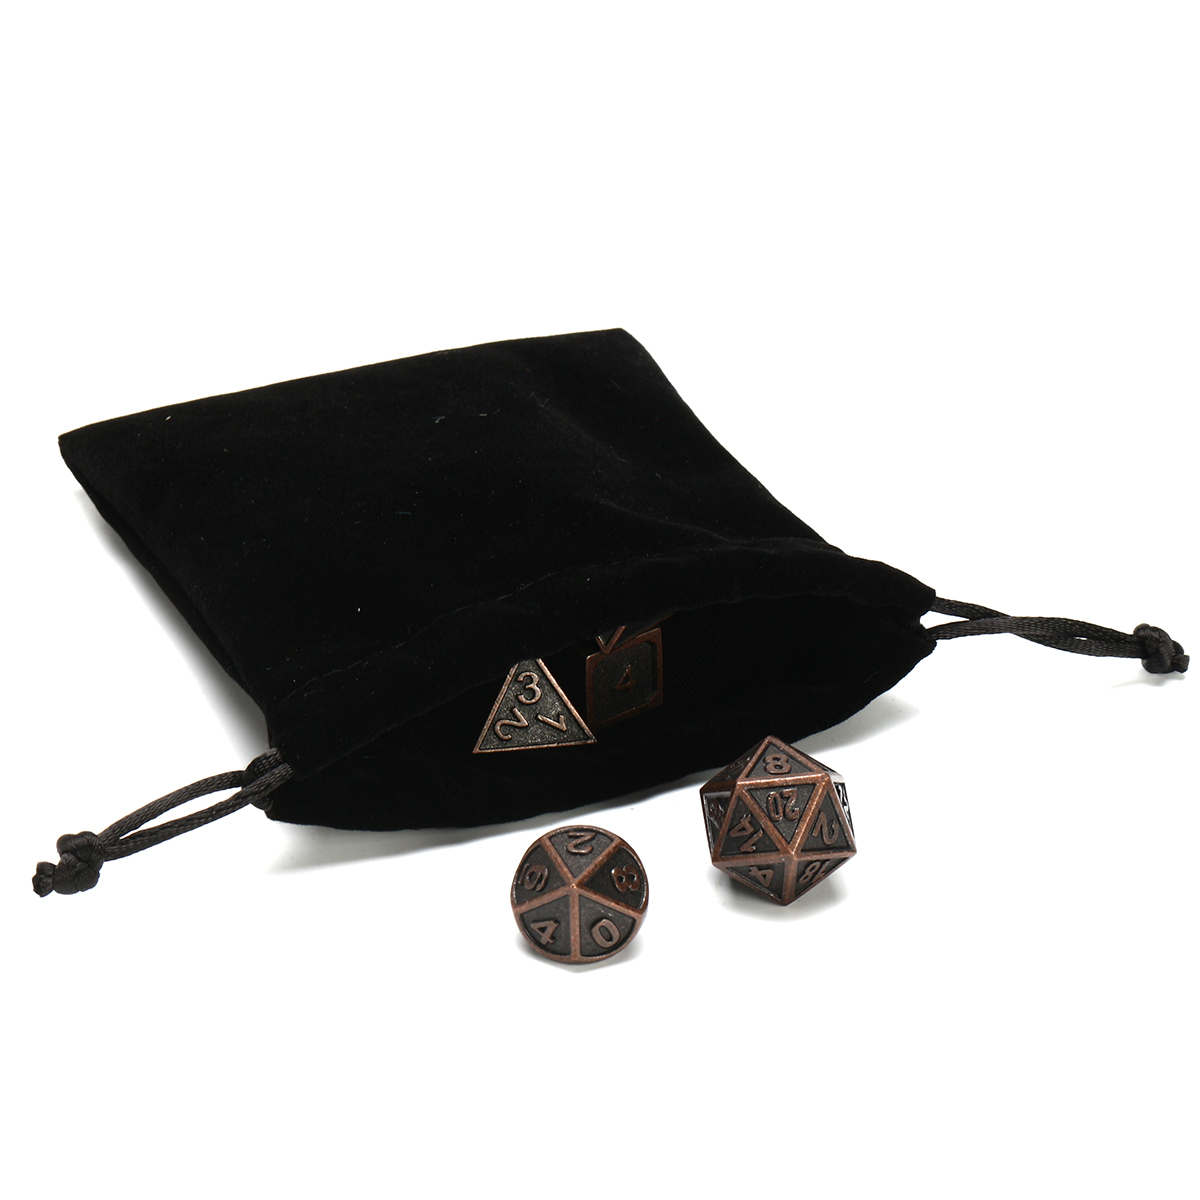 ECUBEE Solid Metal Polyhedral Dice Antique Color Role Playing RPG Gadget 7 Dice Set With Bag